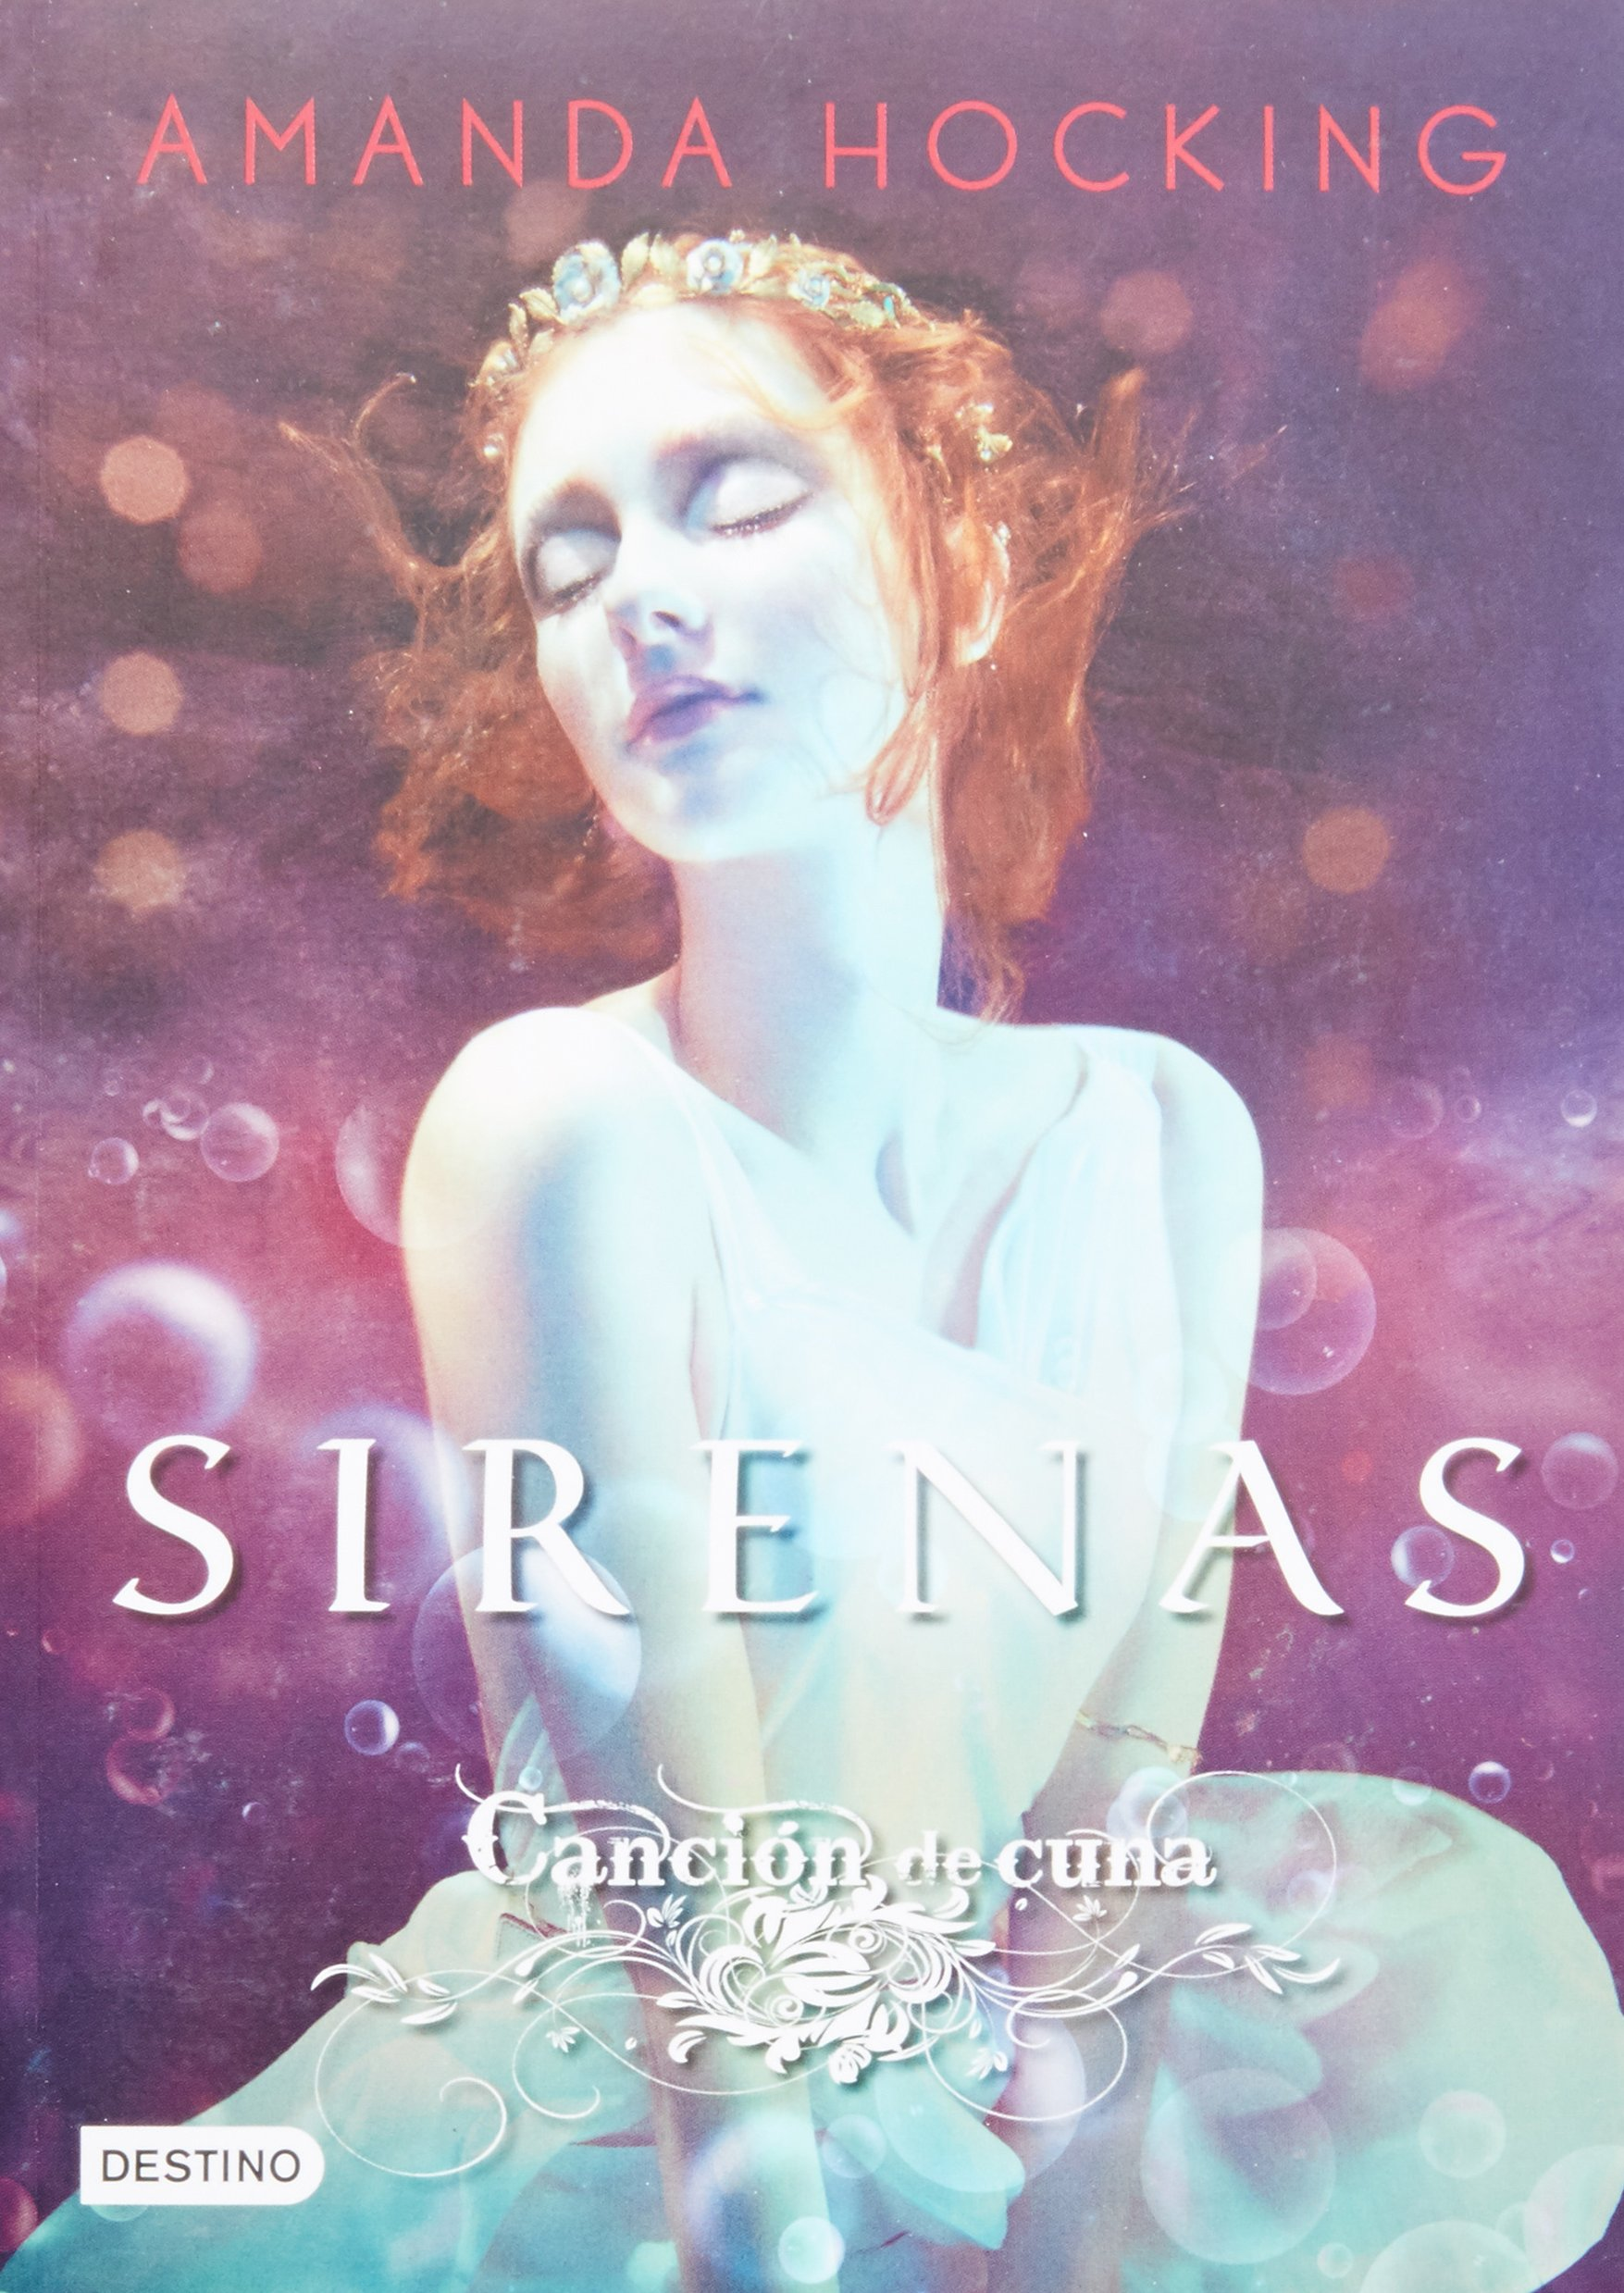 Cancion de Cuna=Lullaby (Sirenas/Sirens): Amazon.es: Amanda Hocking: Libros